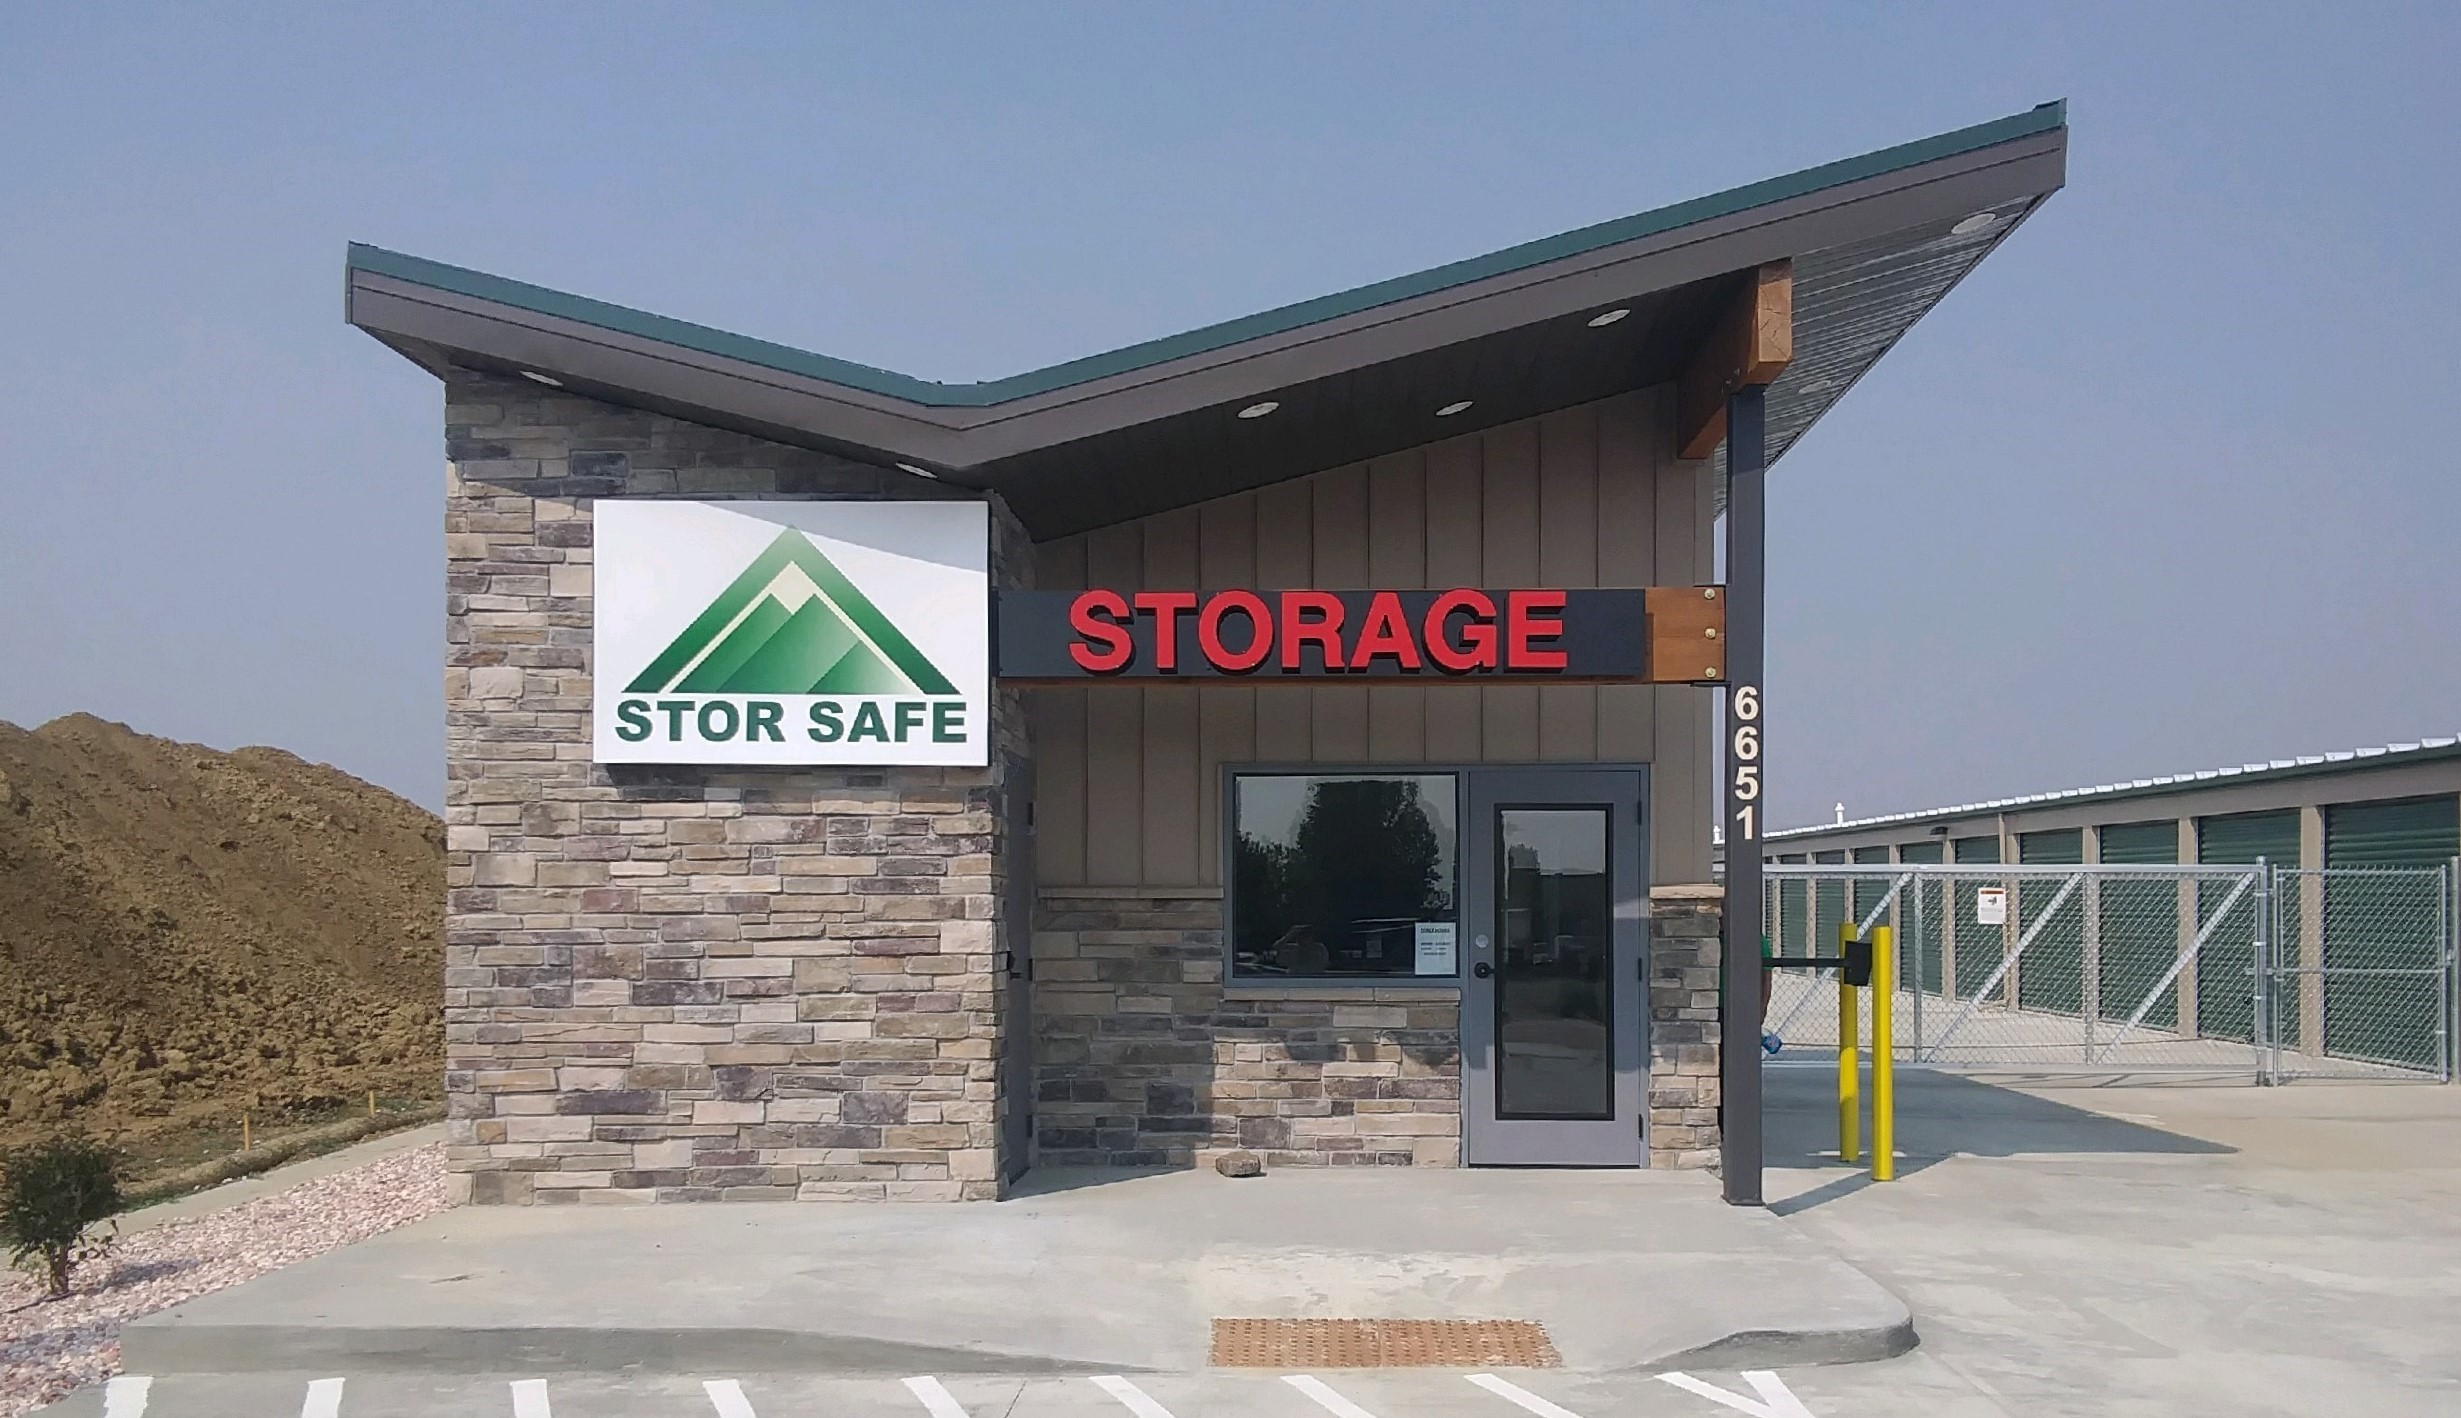 Stor Safe Self Storage